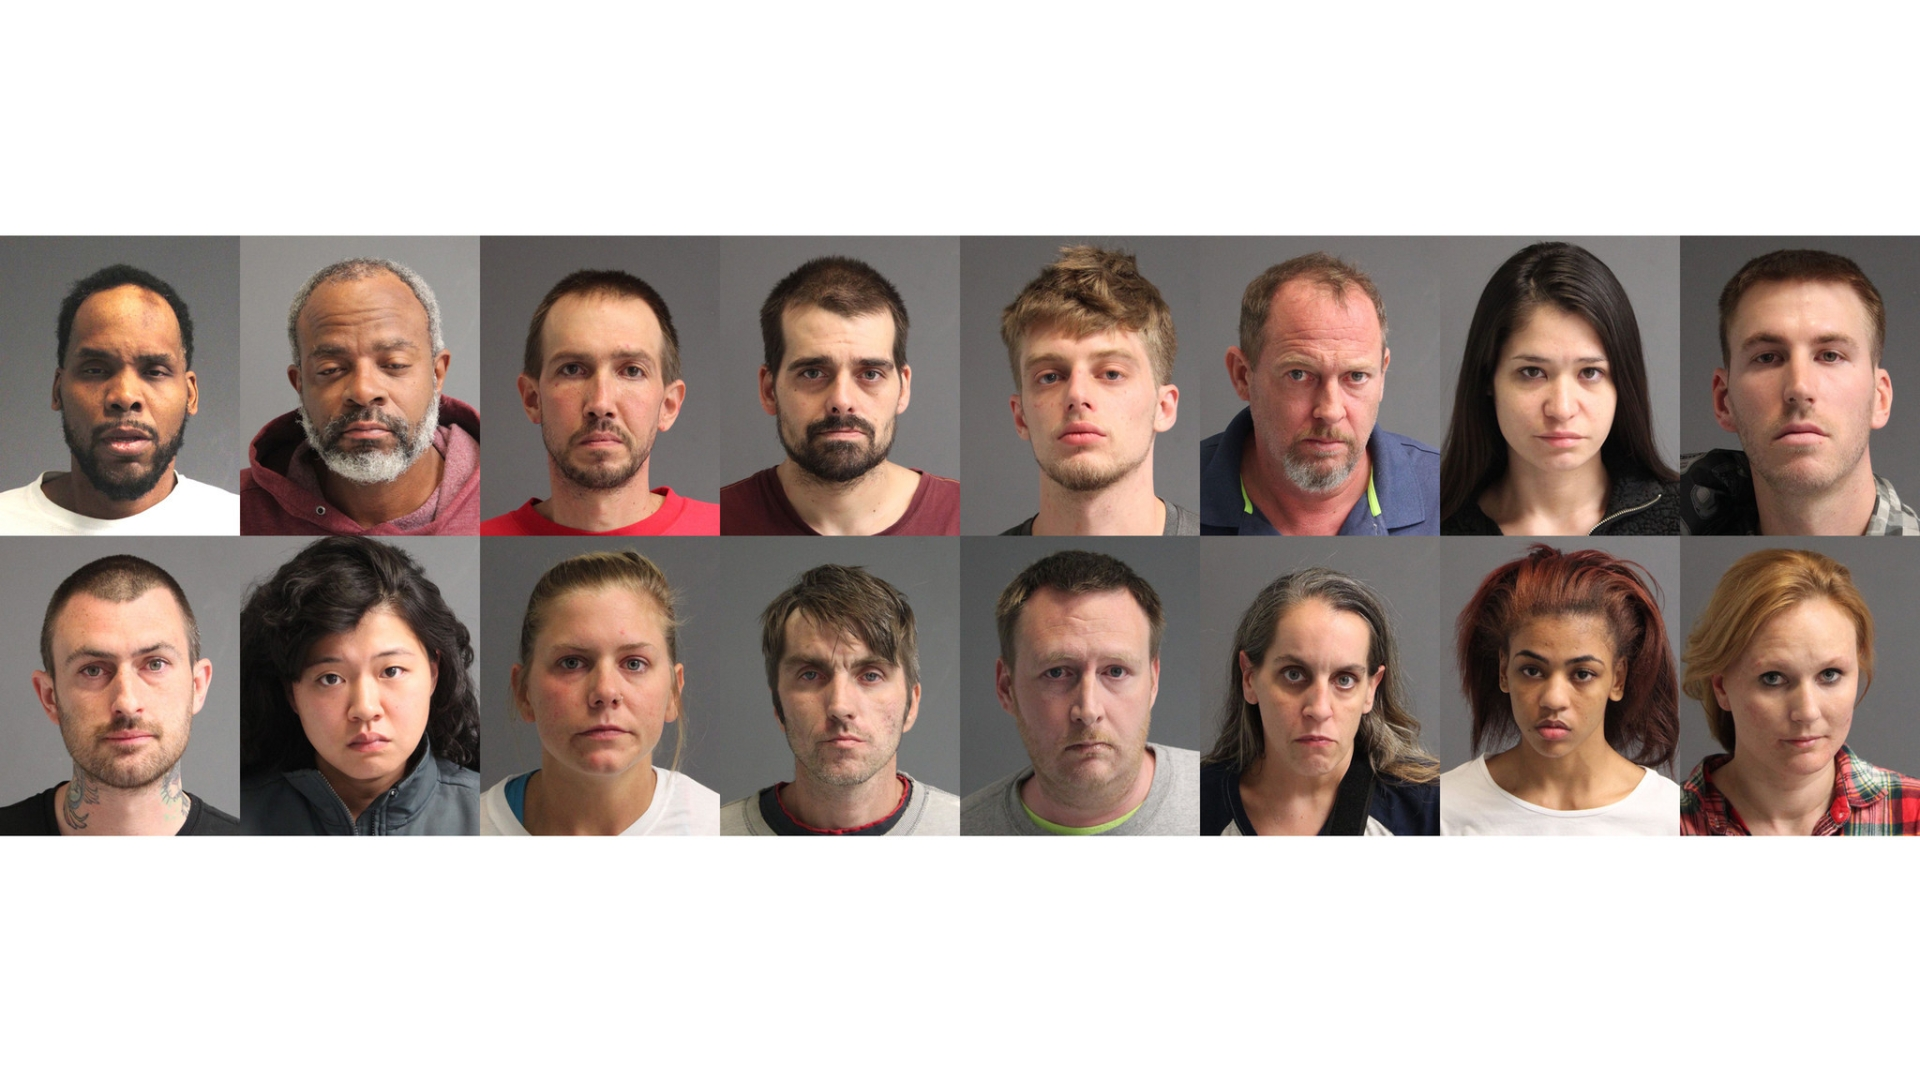 Police charge 21 in alleged Anne Arundel County drug